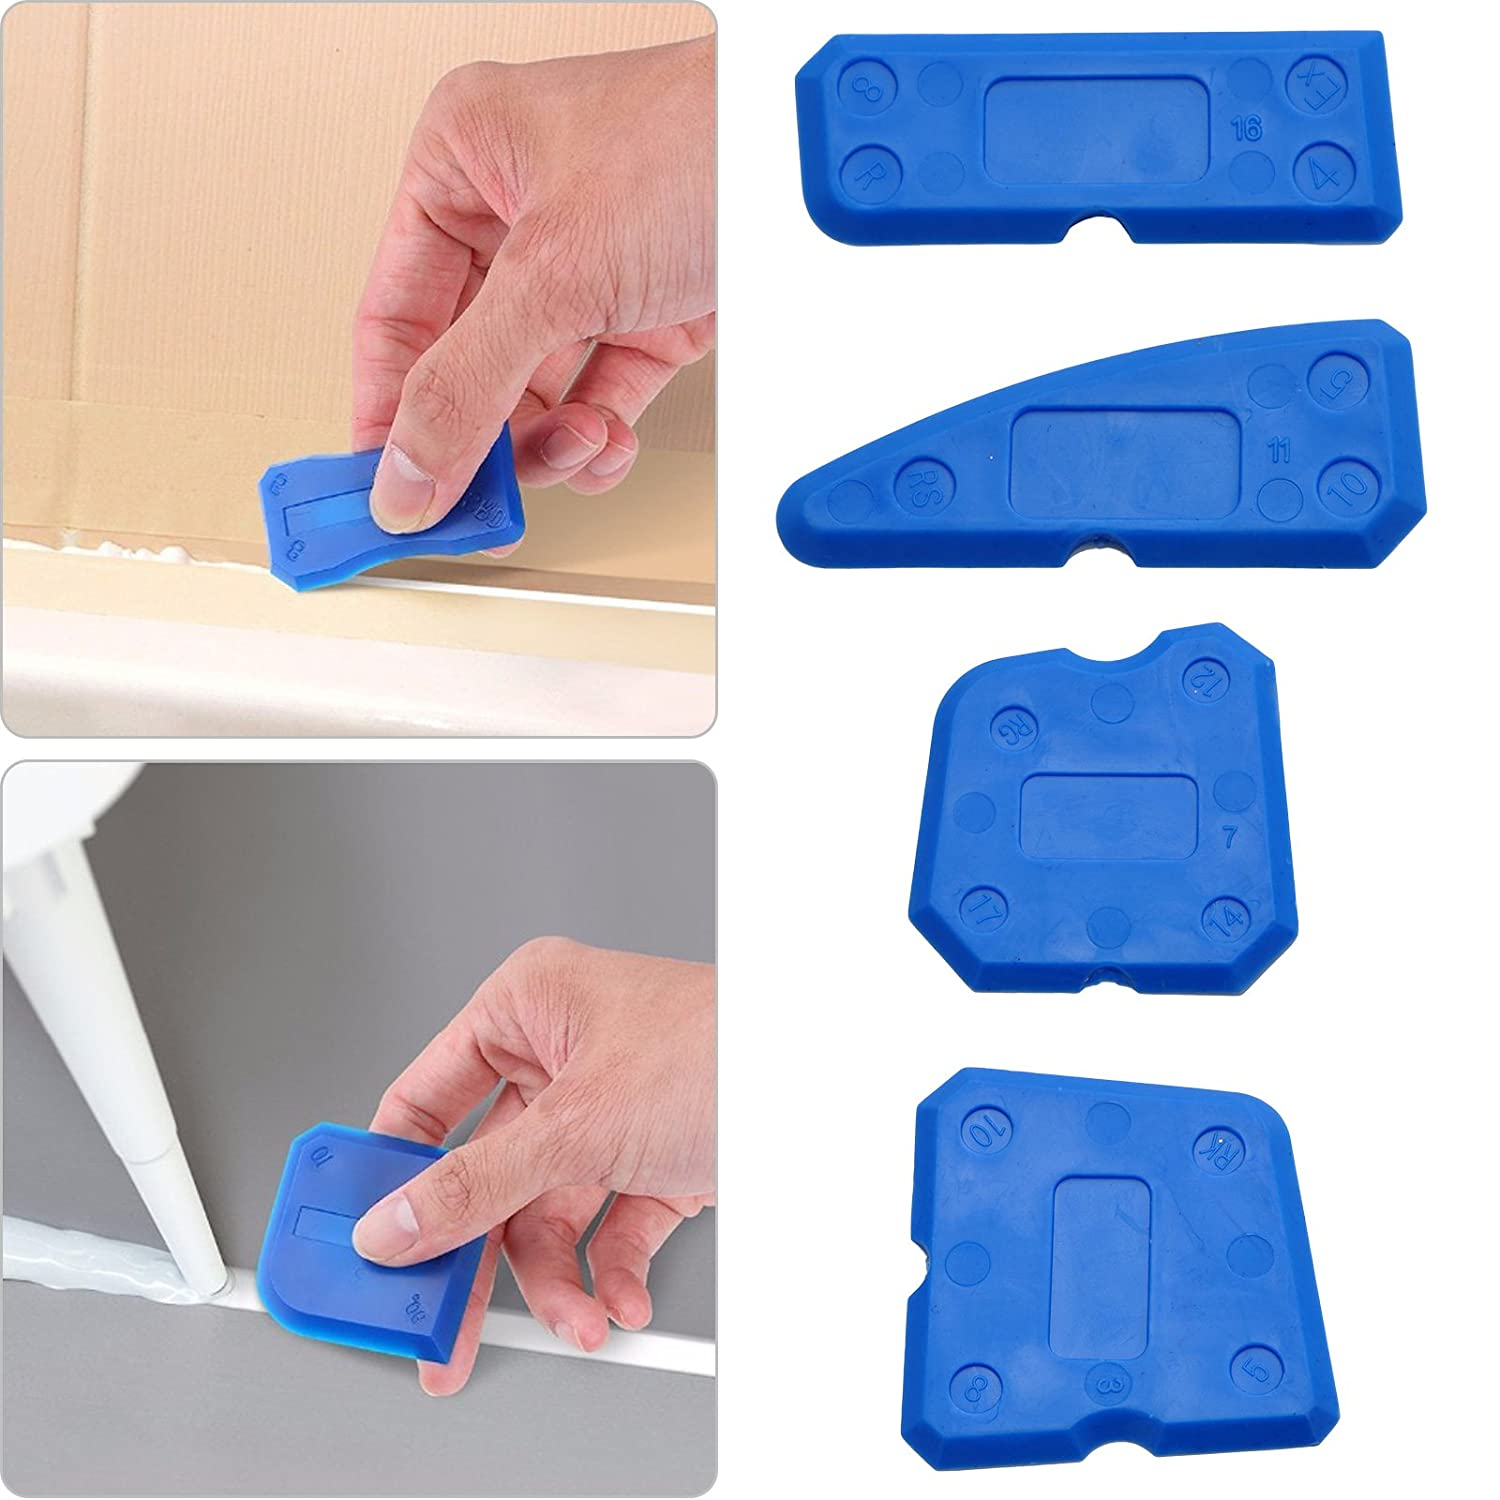 LinkStyle Doinshop Caulk Finishing Tool Kit Joint Sealant Plastic Grout Remover Scraper Recommended For Home Maintenance Blue